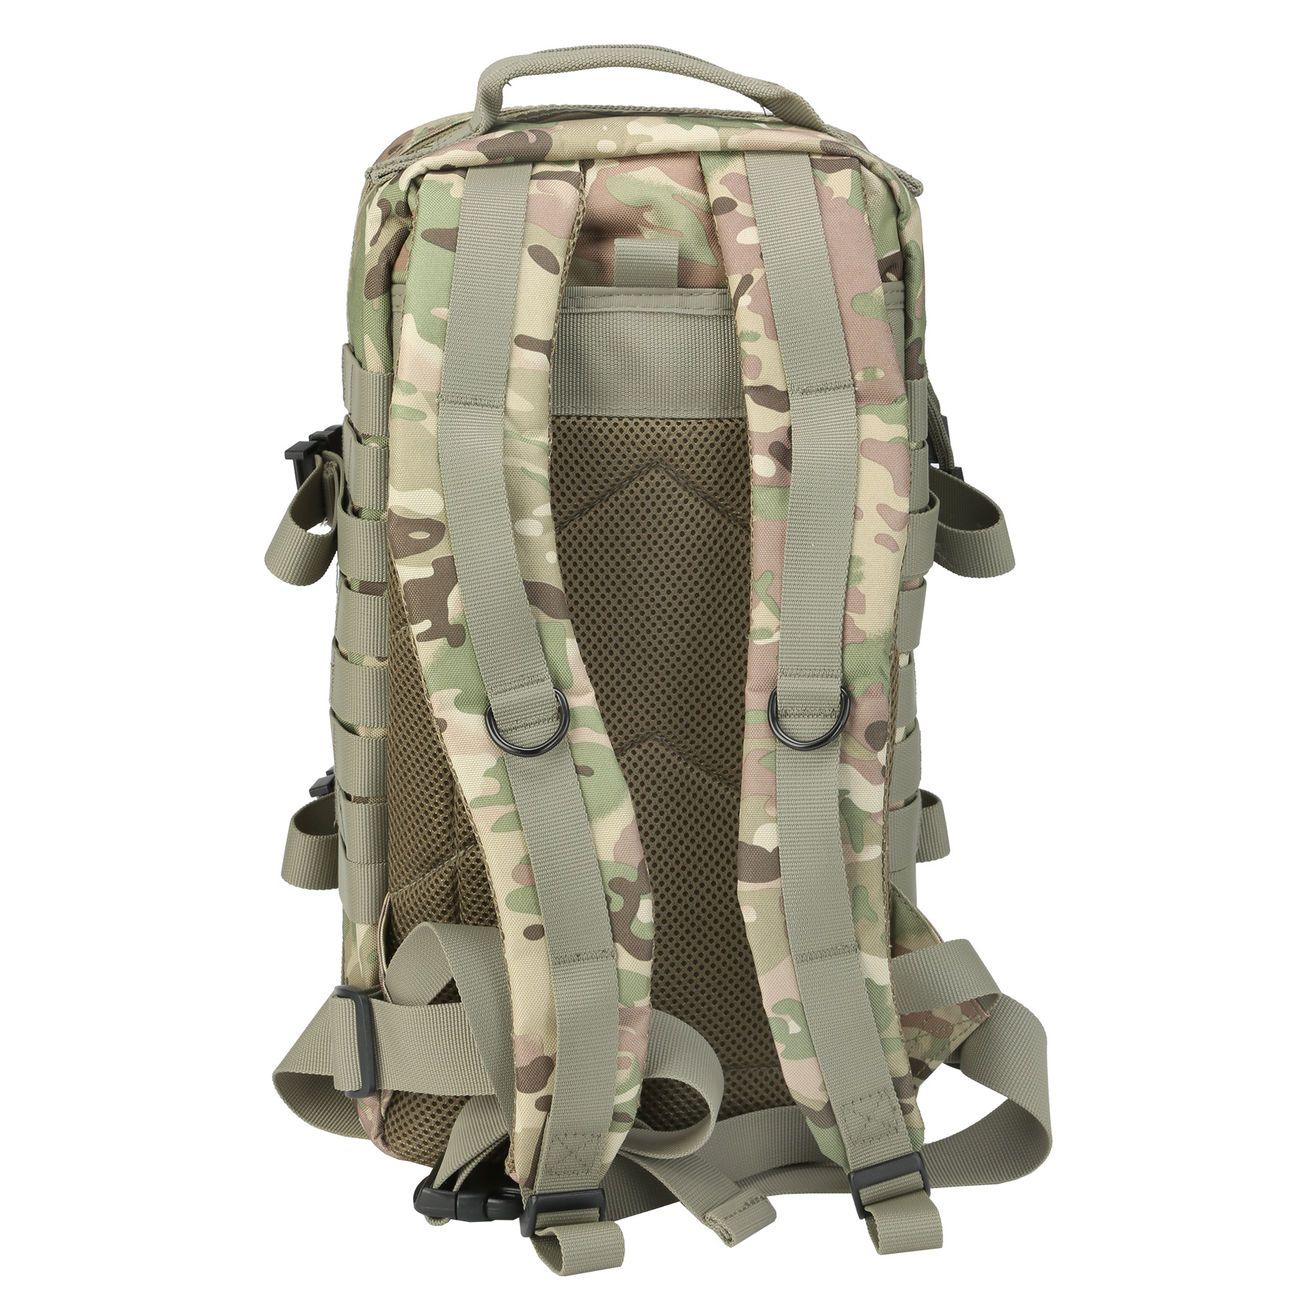 MFH Rucksack Assault I operation camo 7